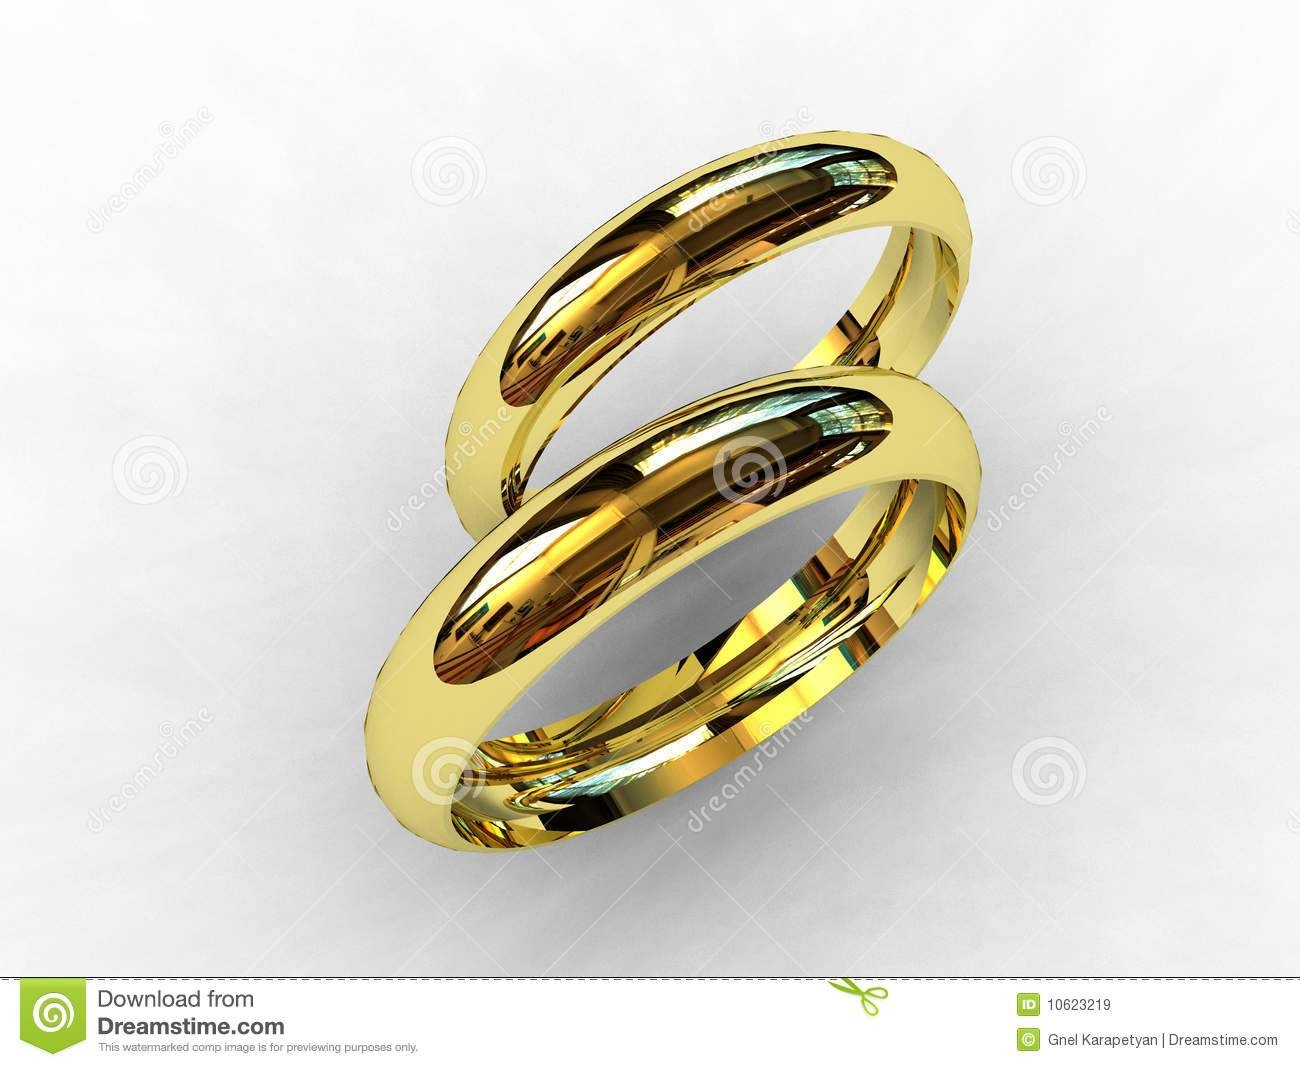 18 Karat Gold Wedding Bands Royalty Free Stock Images – Image Regarding Newest 18 Carat Gold Wedding Bands (View 8 of 16)